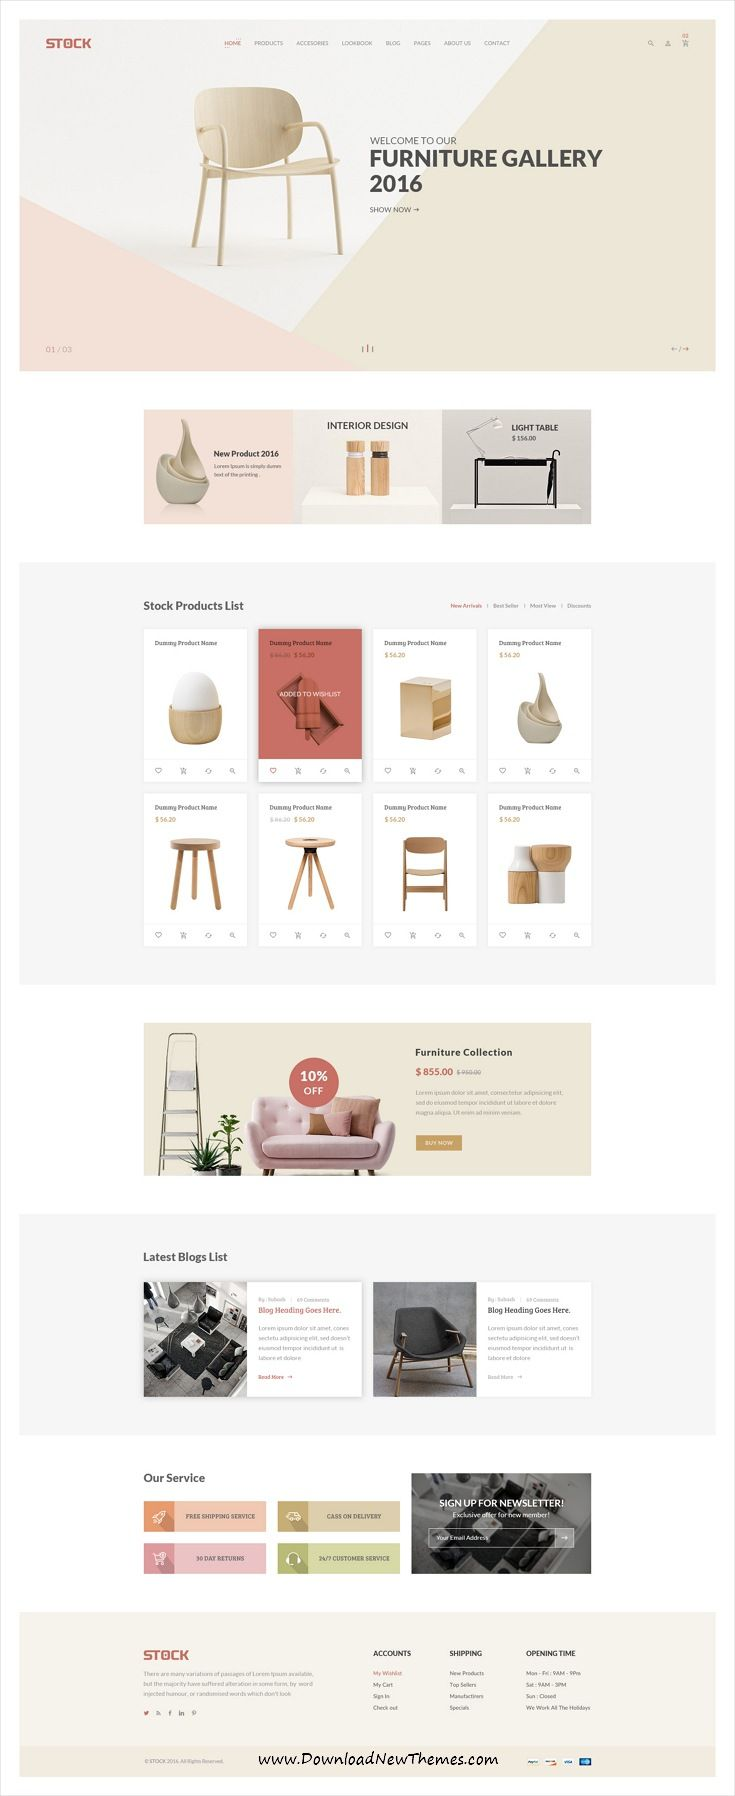 Stock is clean and modern design #PSD template for awesome #furniture store #eCommerce #website with 21+ layered PSD pages to live preview & download click on image or Visit